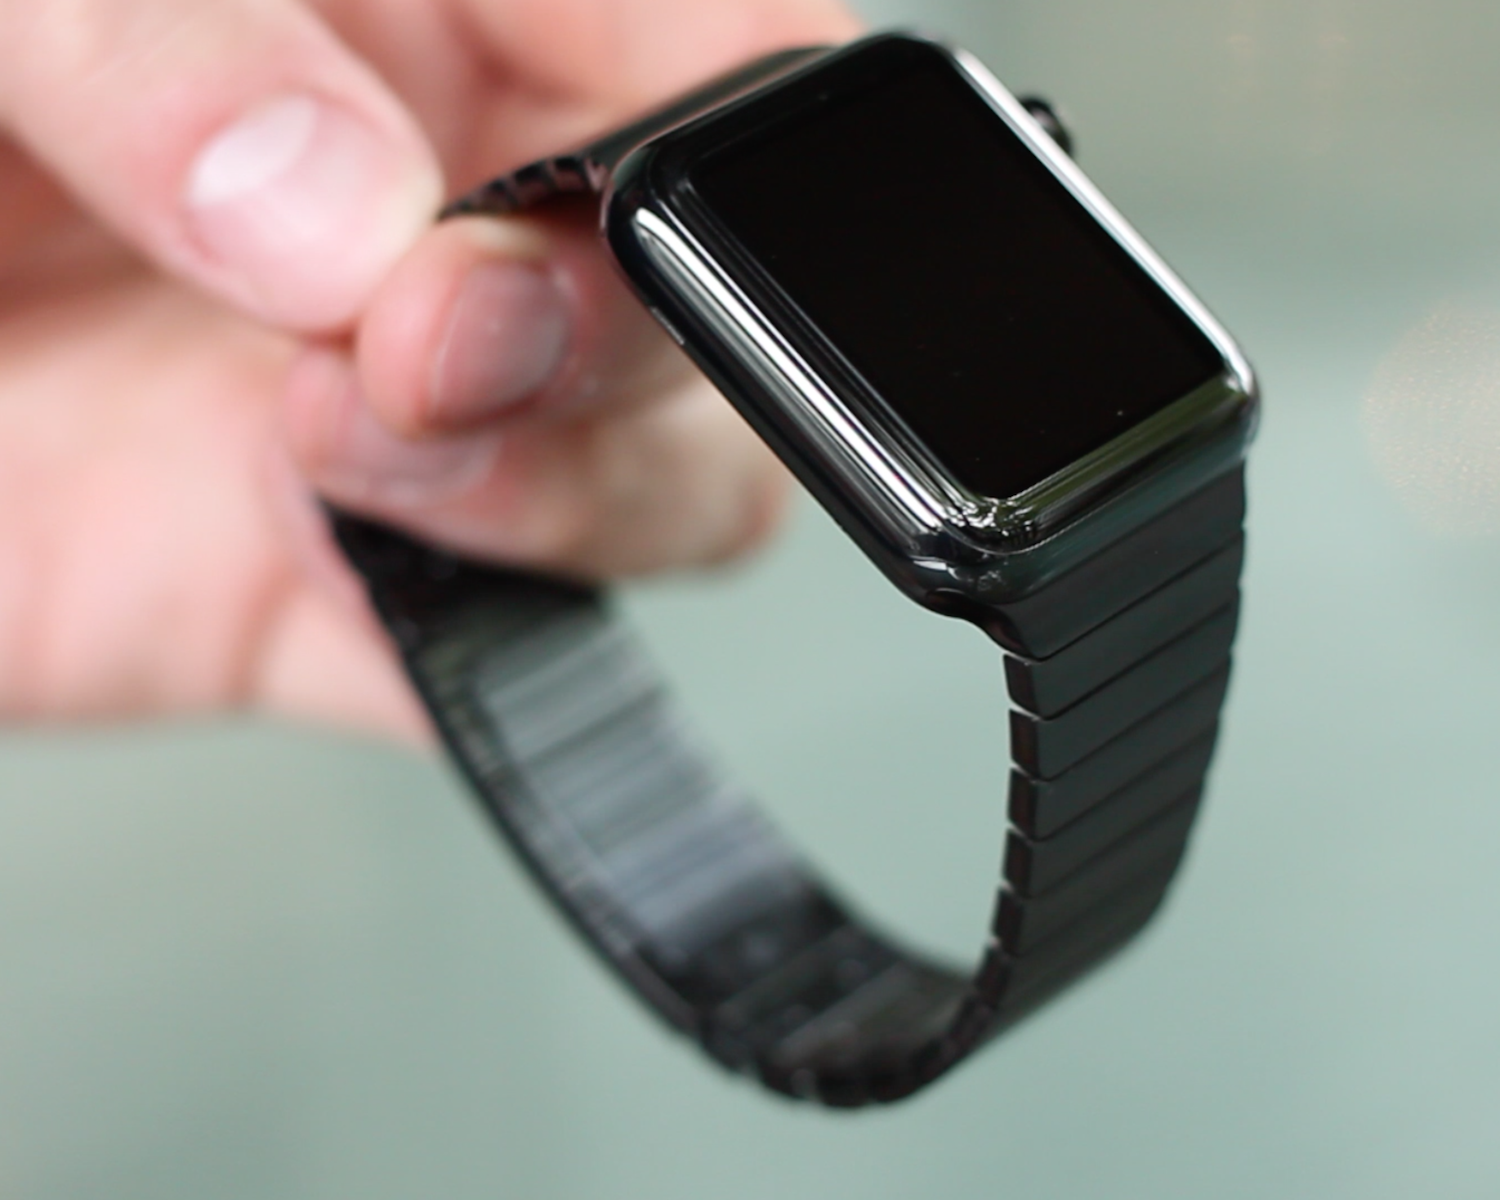 Apple Watch Space Black review